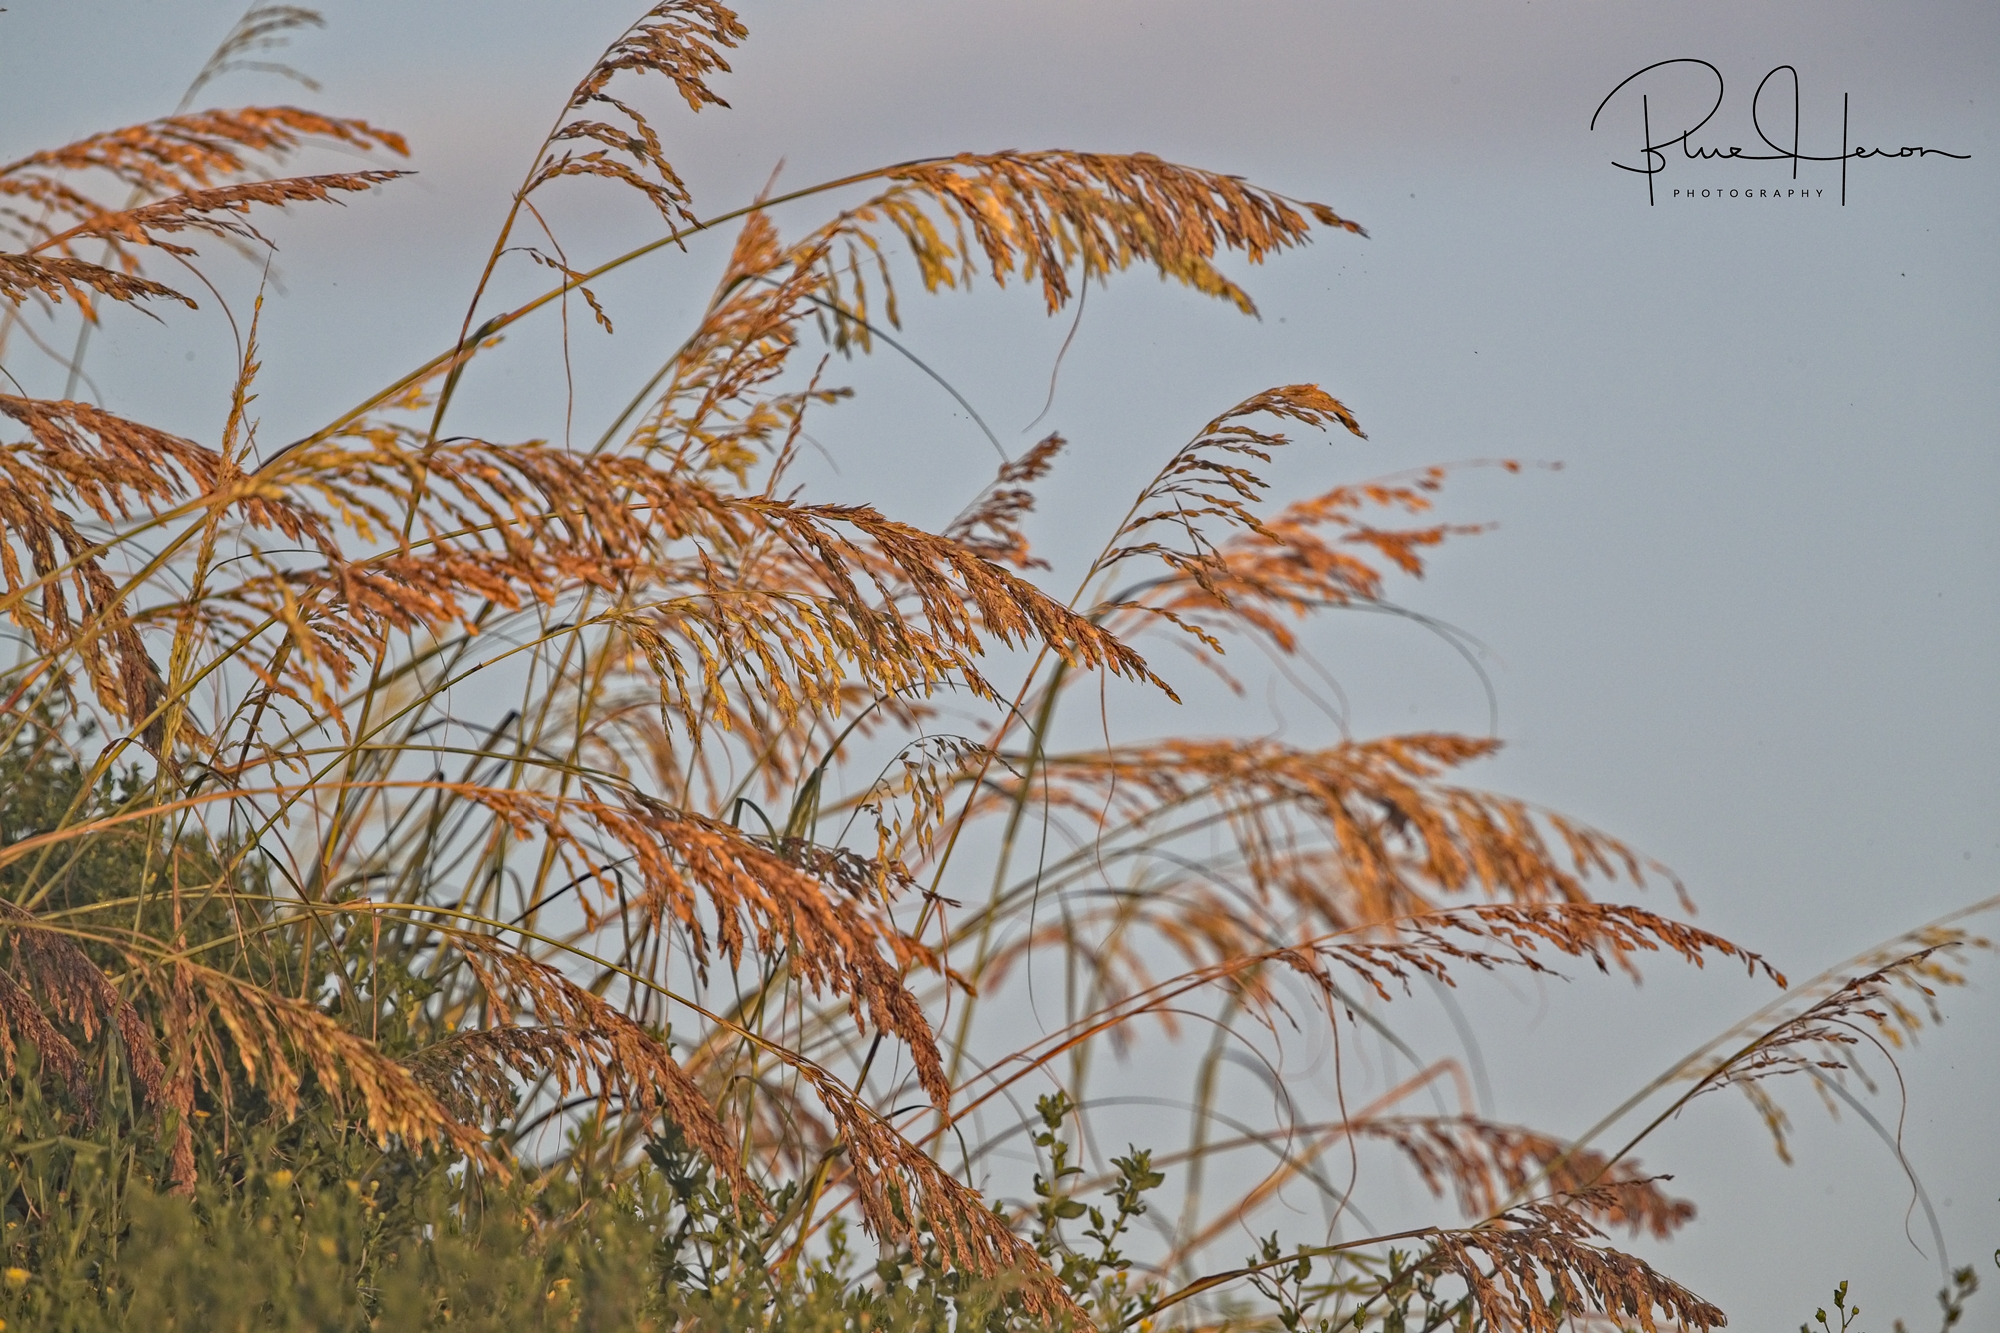 Sea Oats, a tall subtropical grass is an integral and important part of a healthy coastal dune environment.